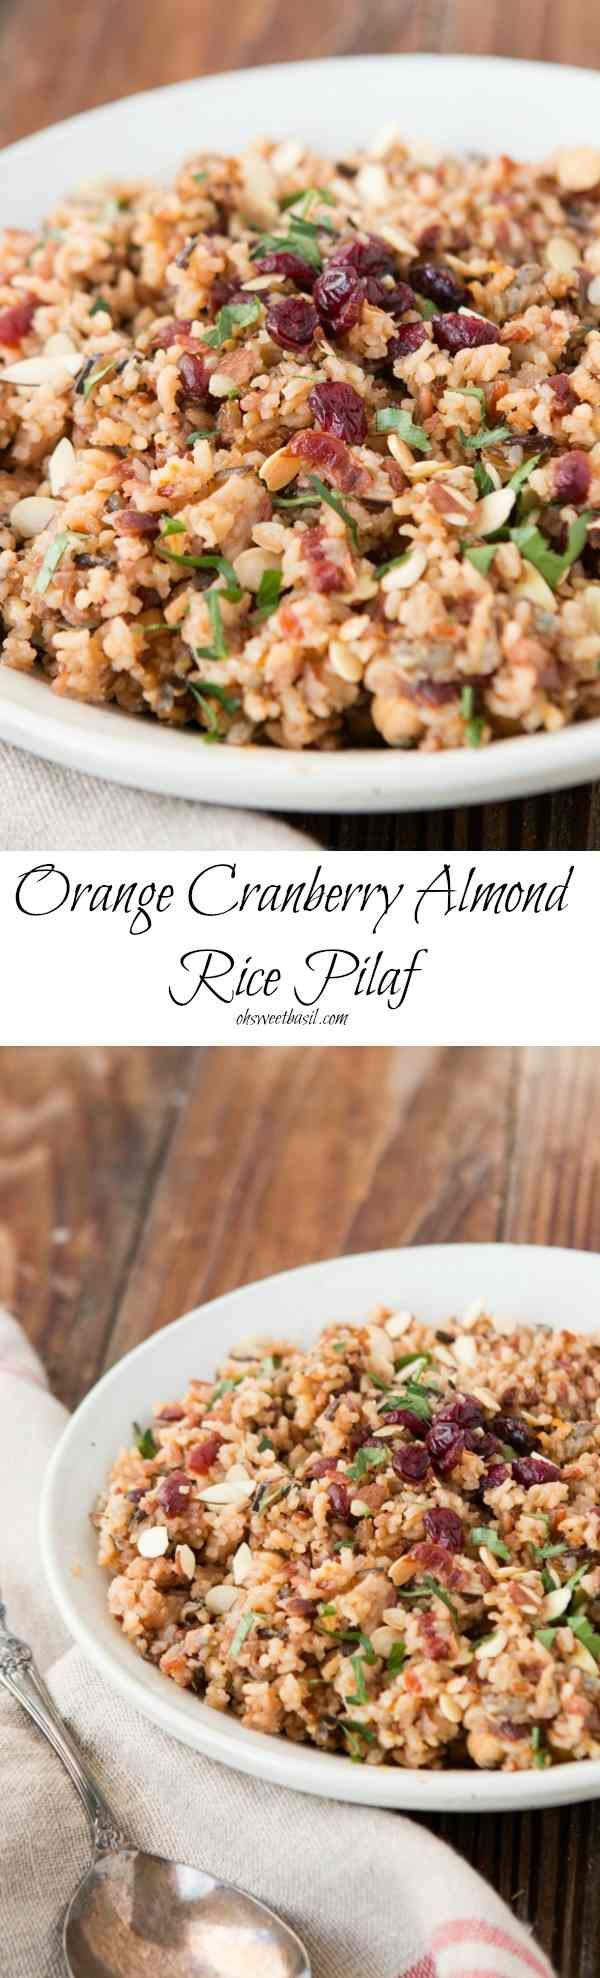 Orange Cranberry Almond Rice Pilaf - Oh Sweet Basil